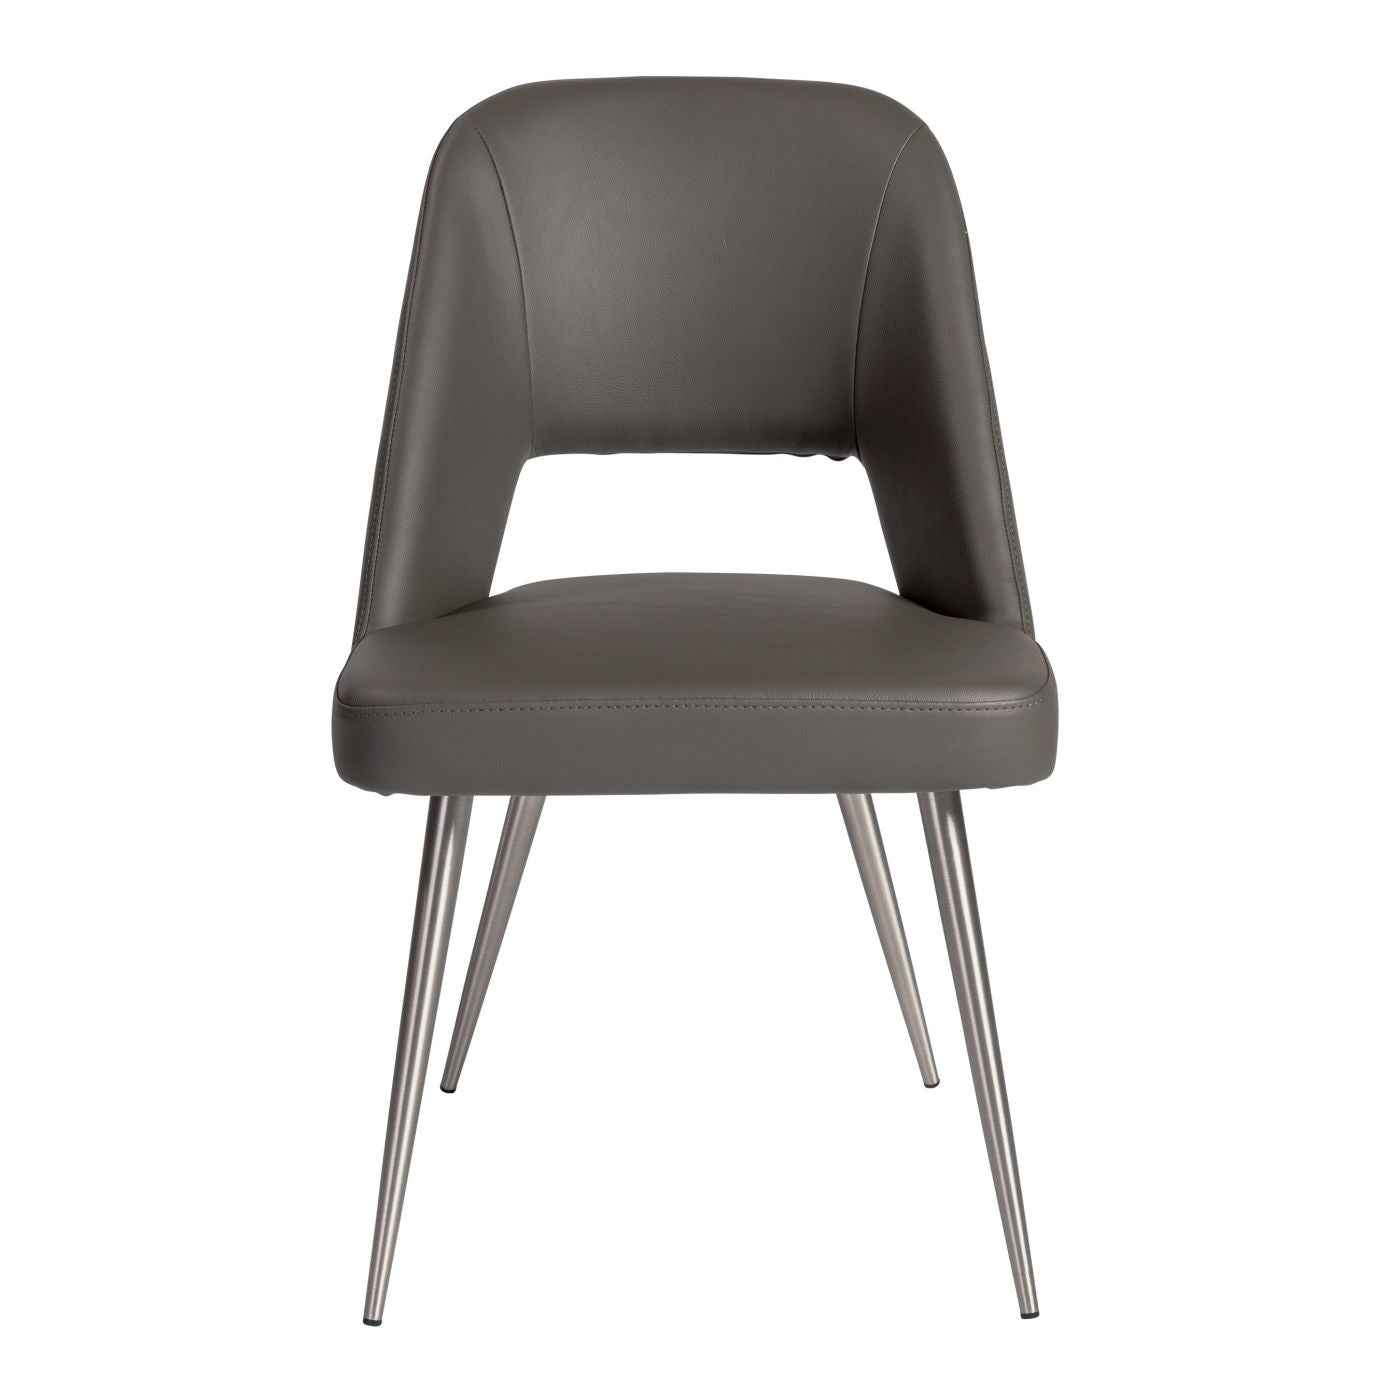 Blair Side Chair In Gray Leatherette With Brushed Stainless Steel Legs    Set Of 2 Dining ...